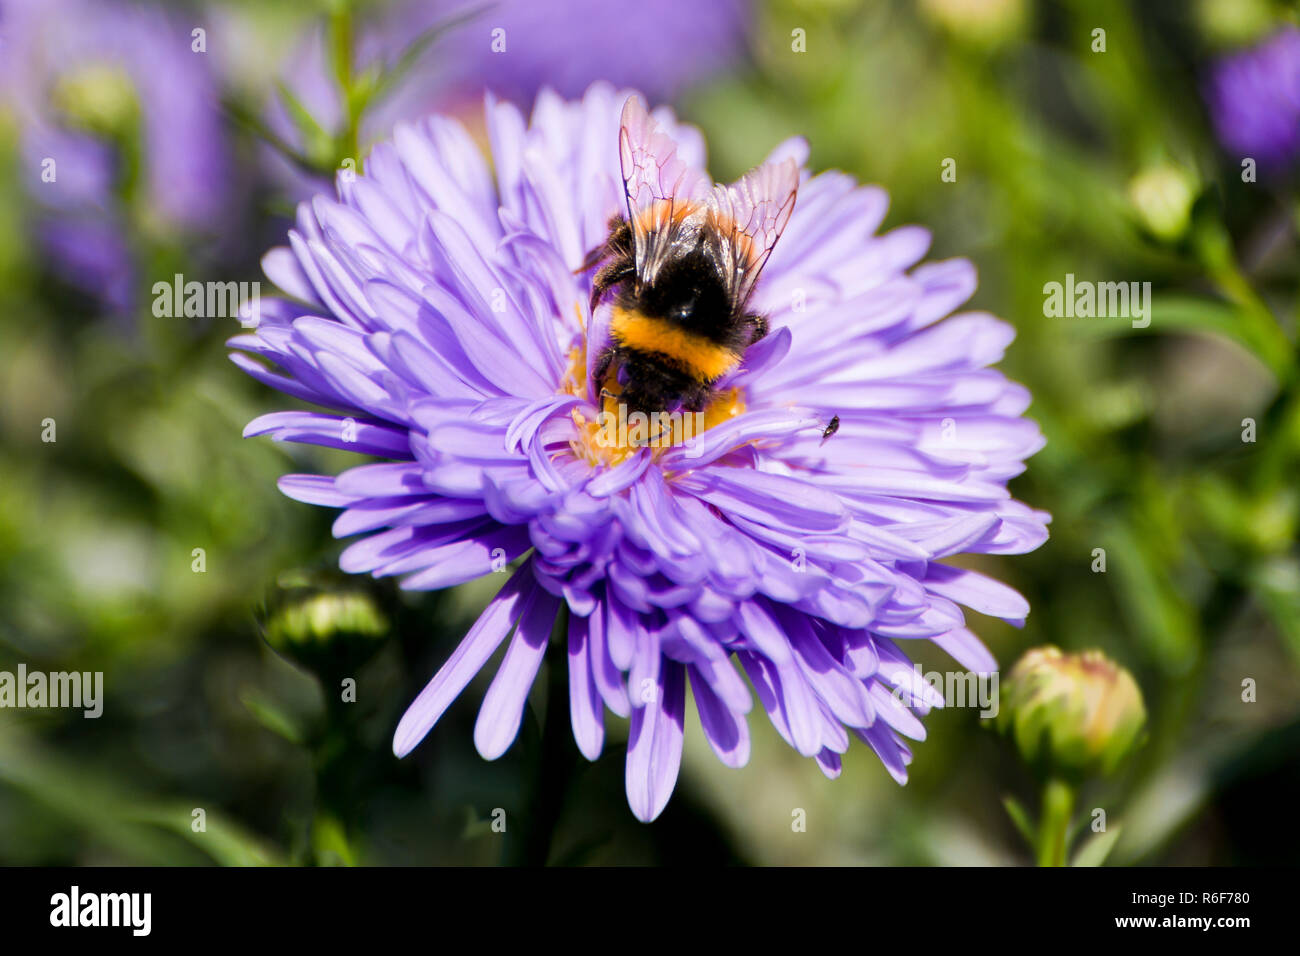 Horizontal close up of a fluffy bumblebee collecting nectar on a purple flower. Stock Photo